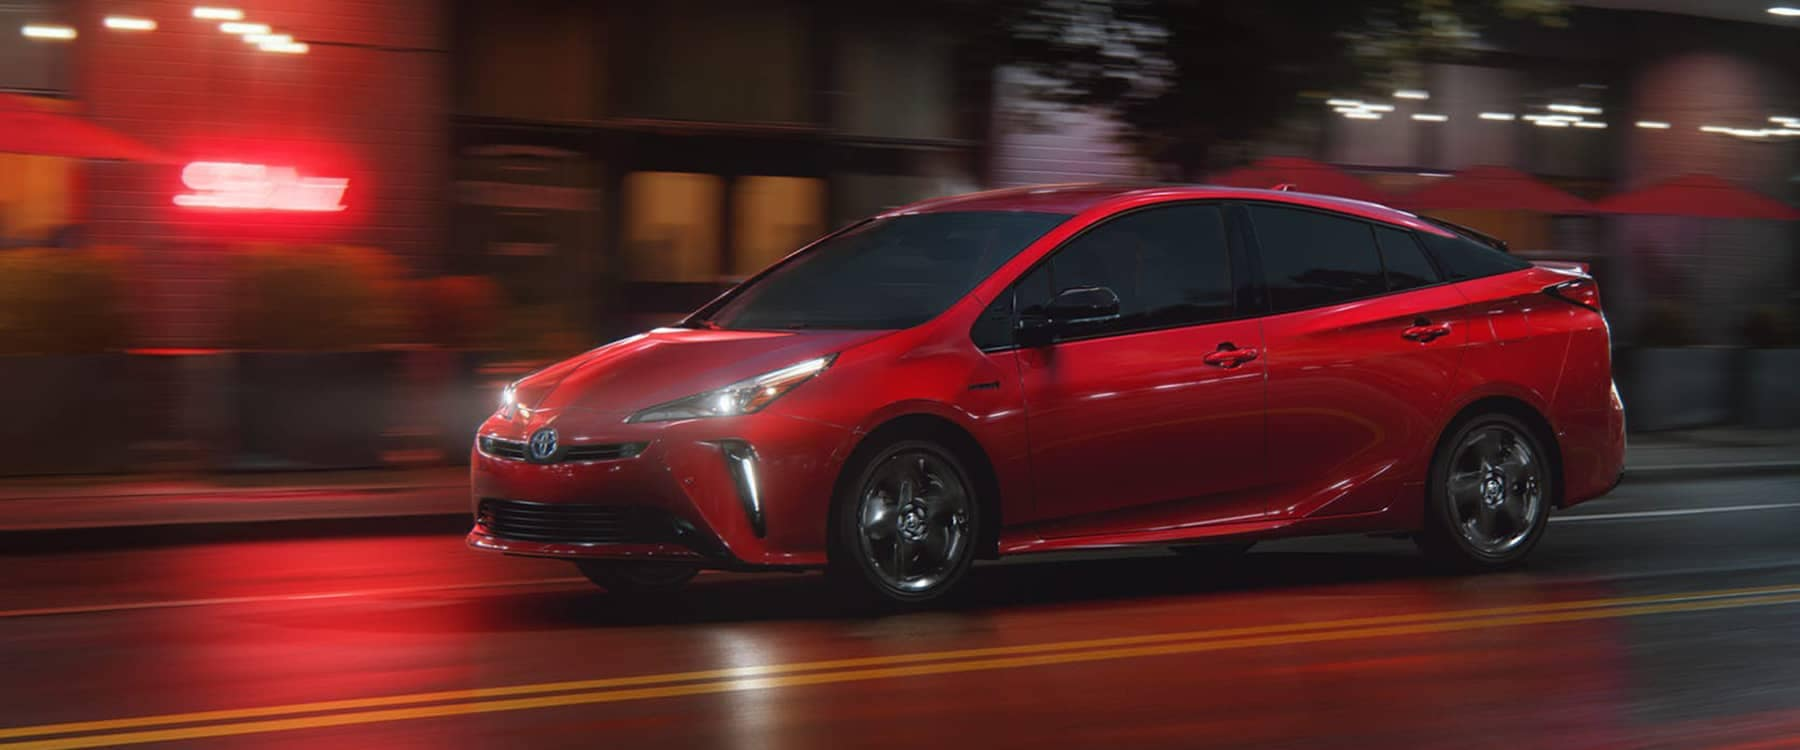 Red 2021 Toyota Prius driving down a road at night